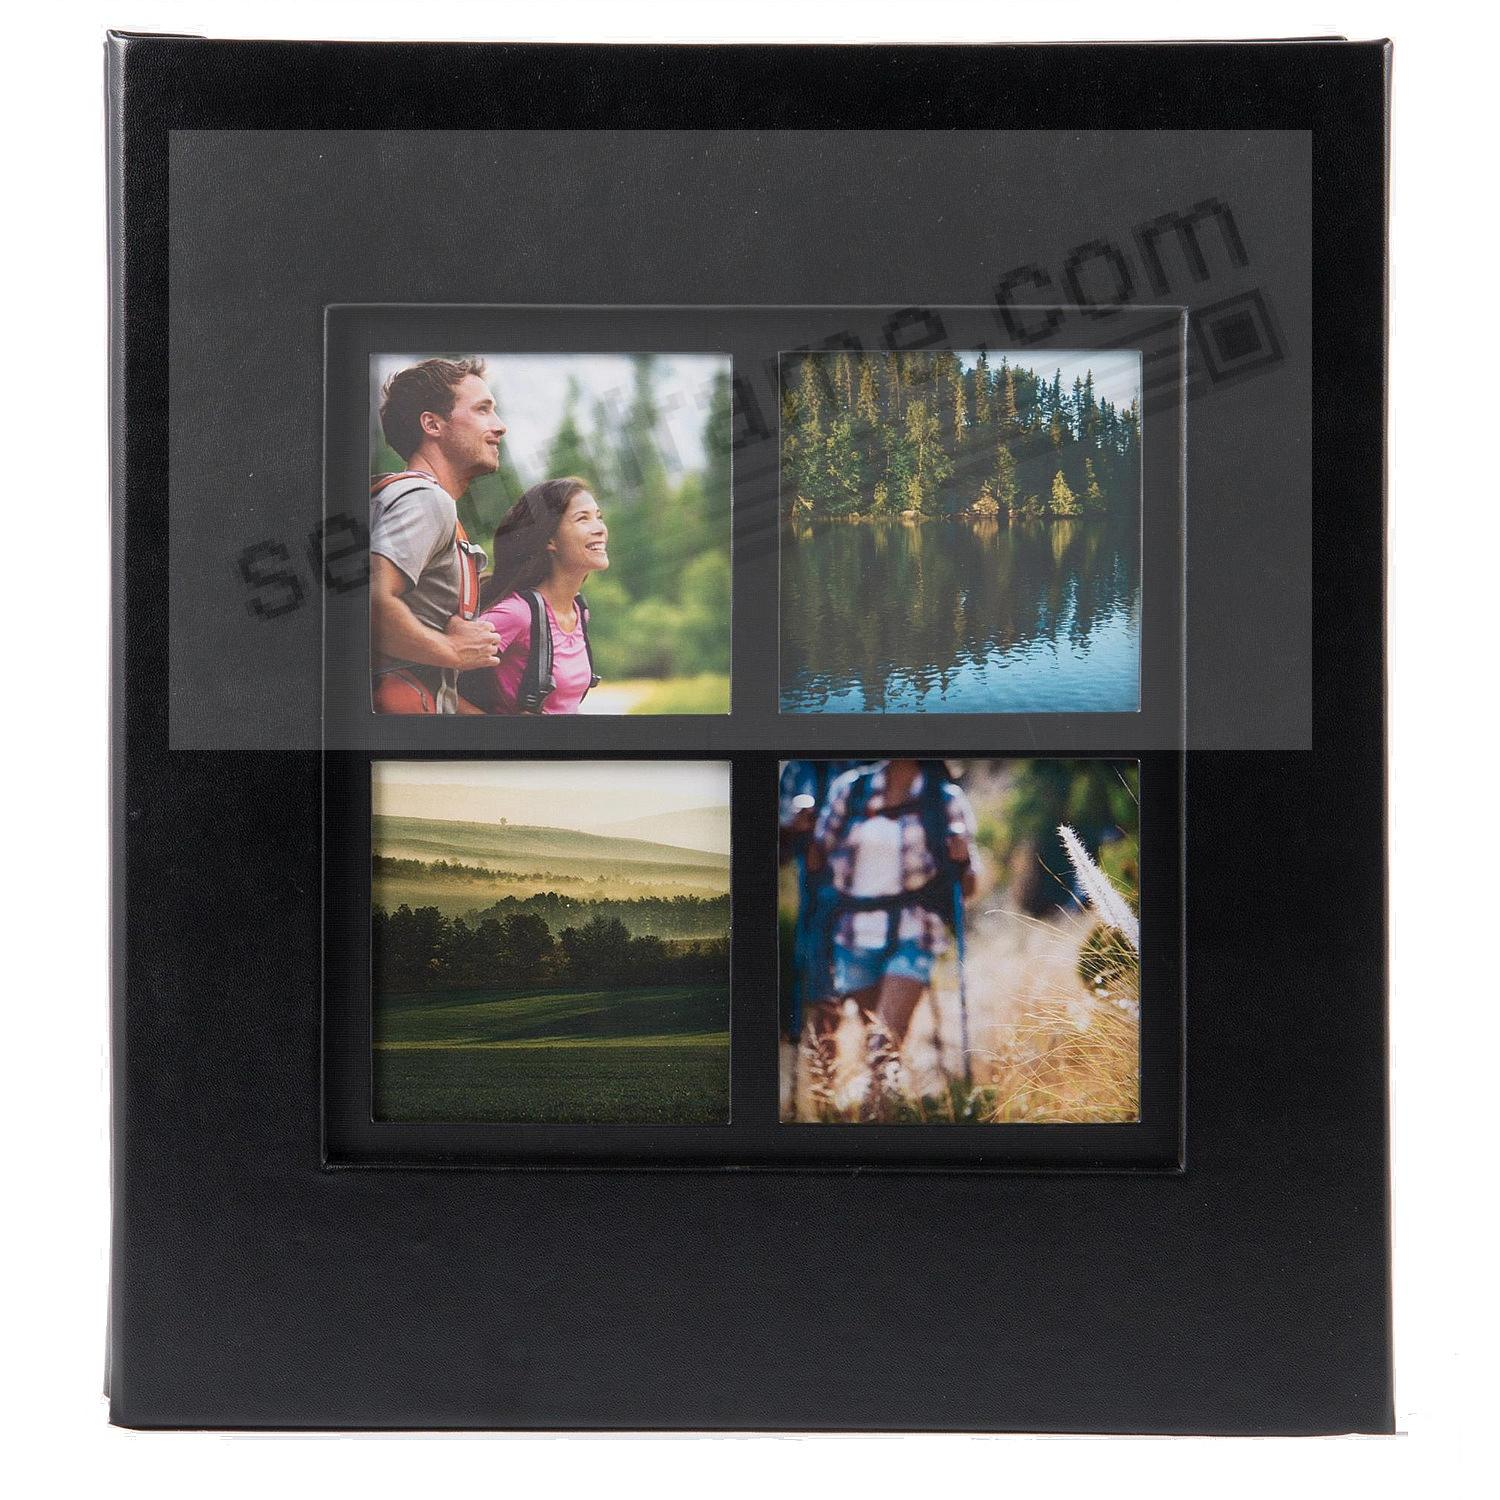 Collage Cover Frame Embossed Family Album - Black - by PINNACLE